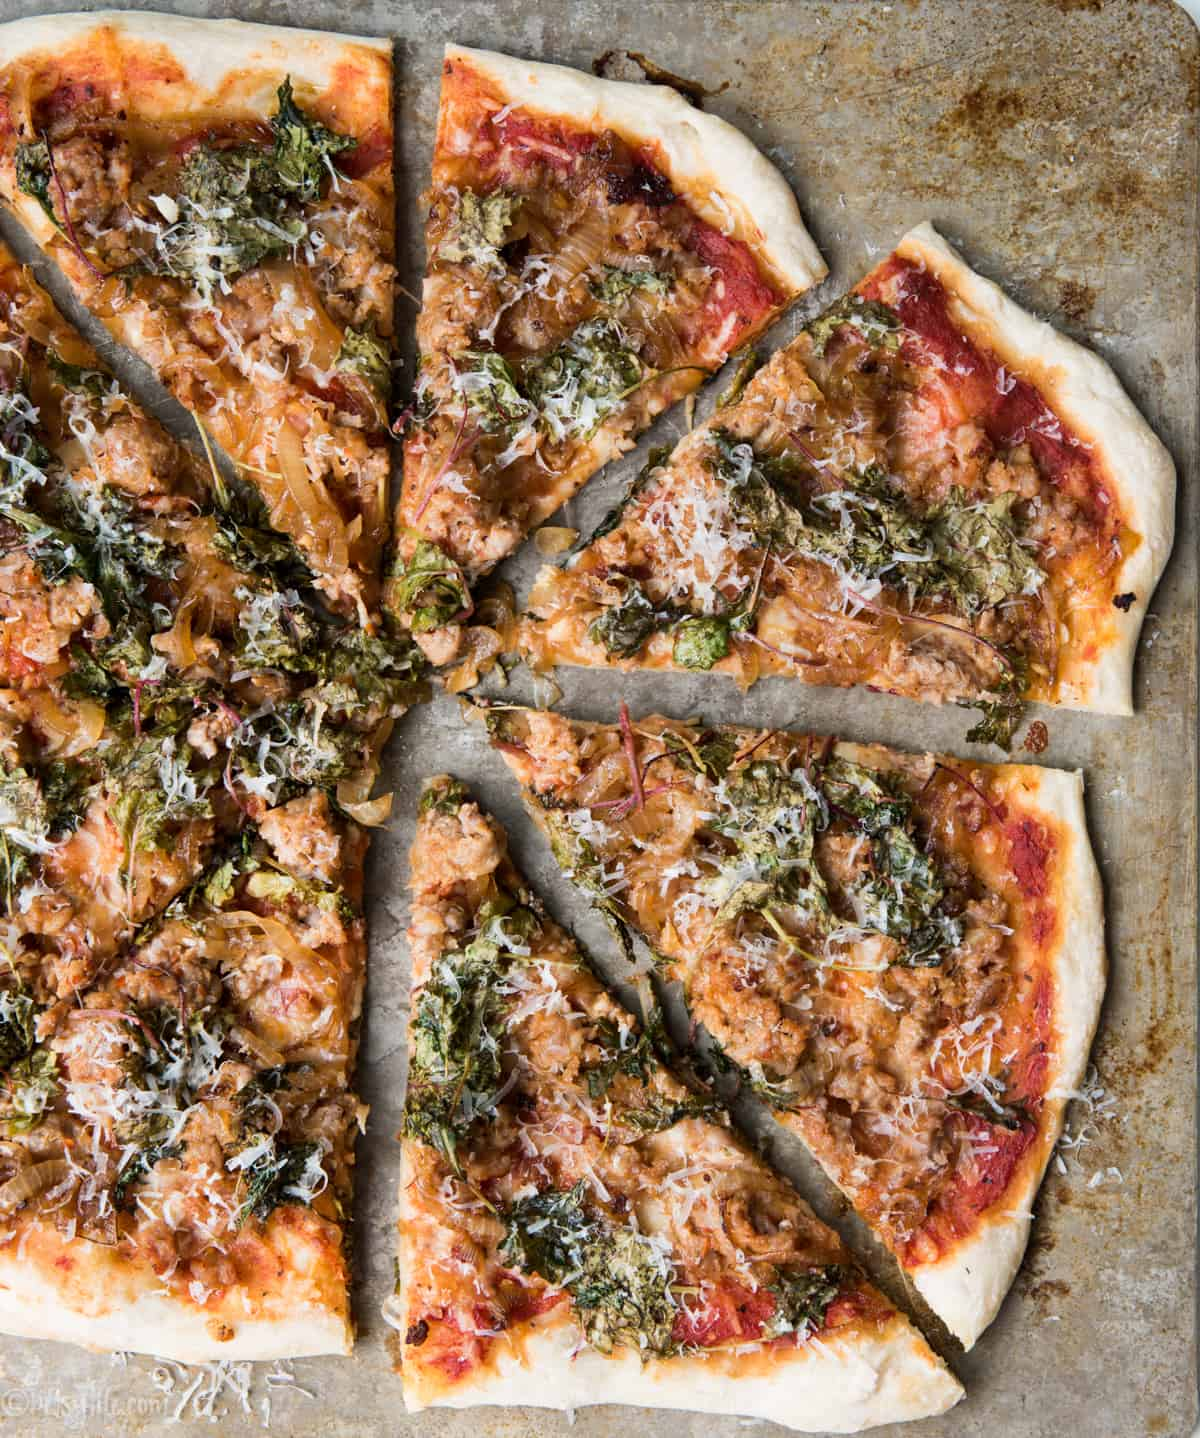 caramelized onion, kale and sausage pizza sliced into triangles on a baking sheet